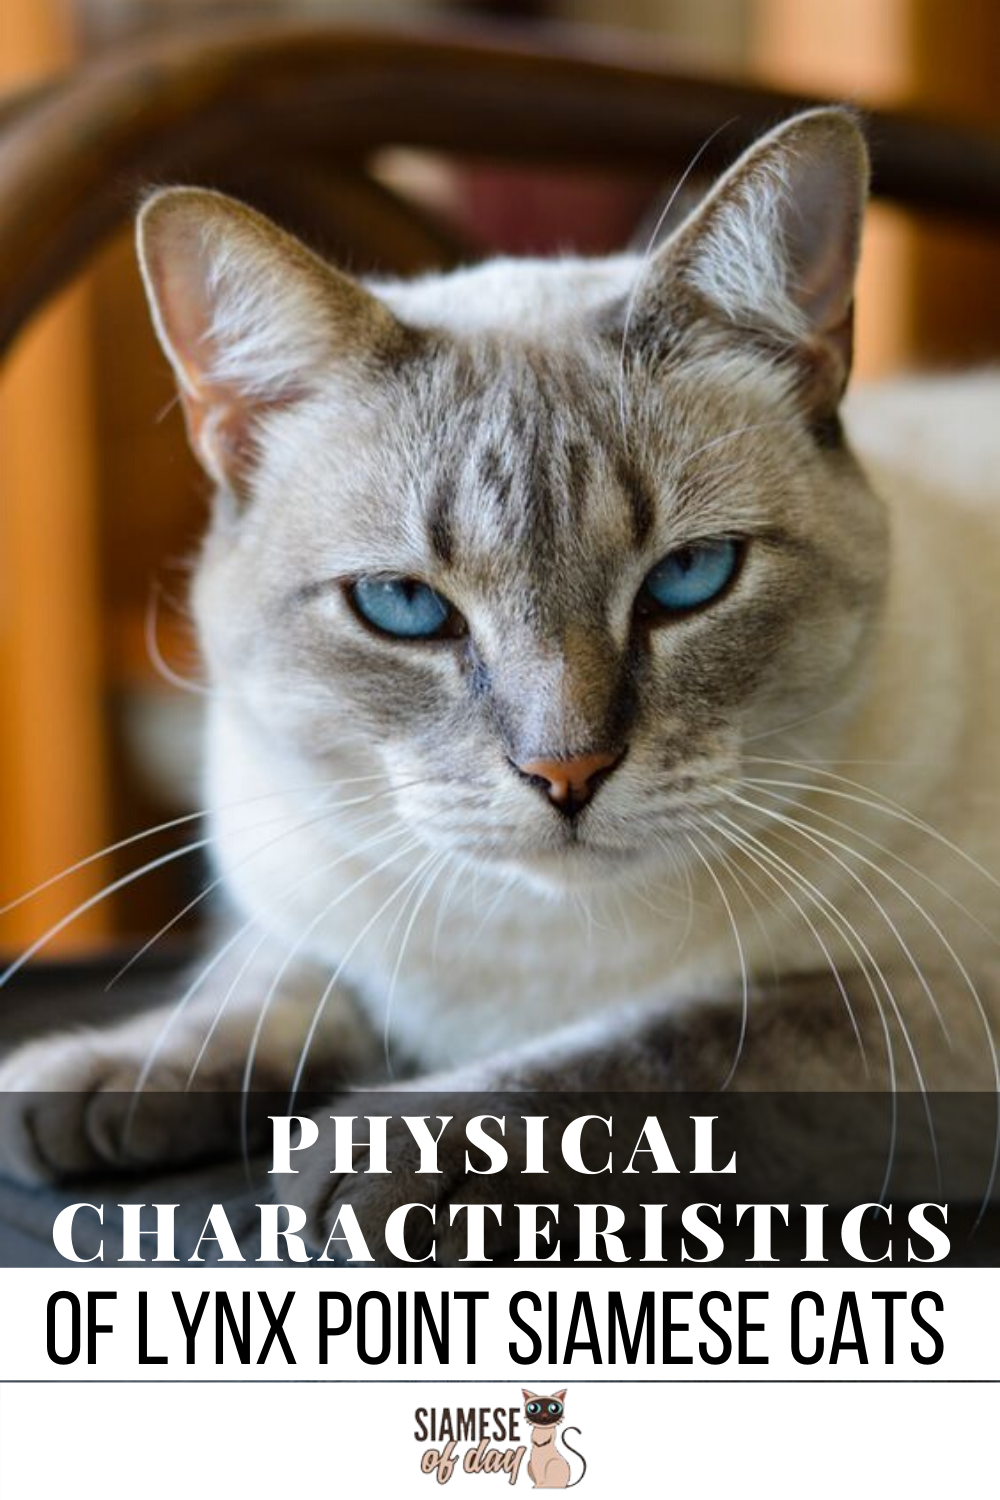 All About the Lynx Point Siamese Cats Siamese cats, Cats